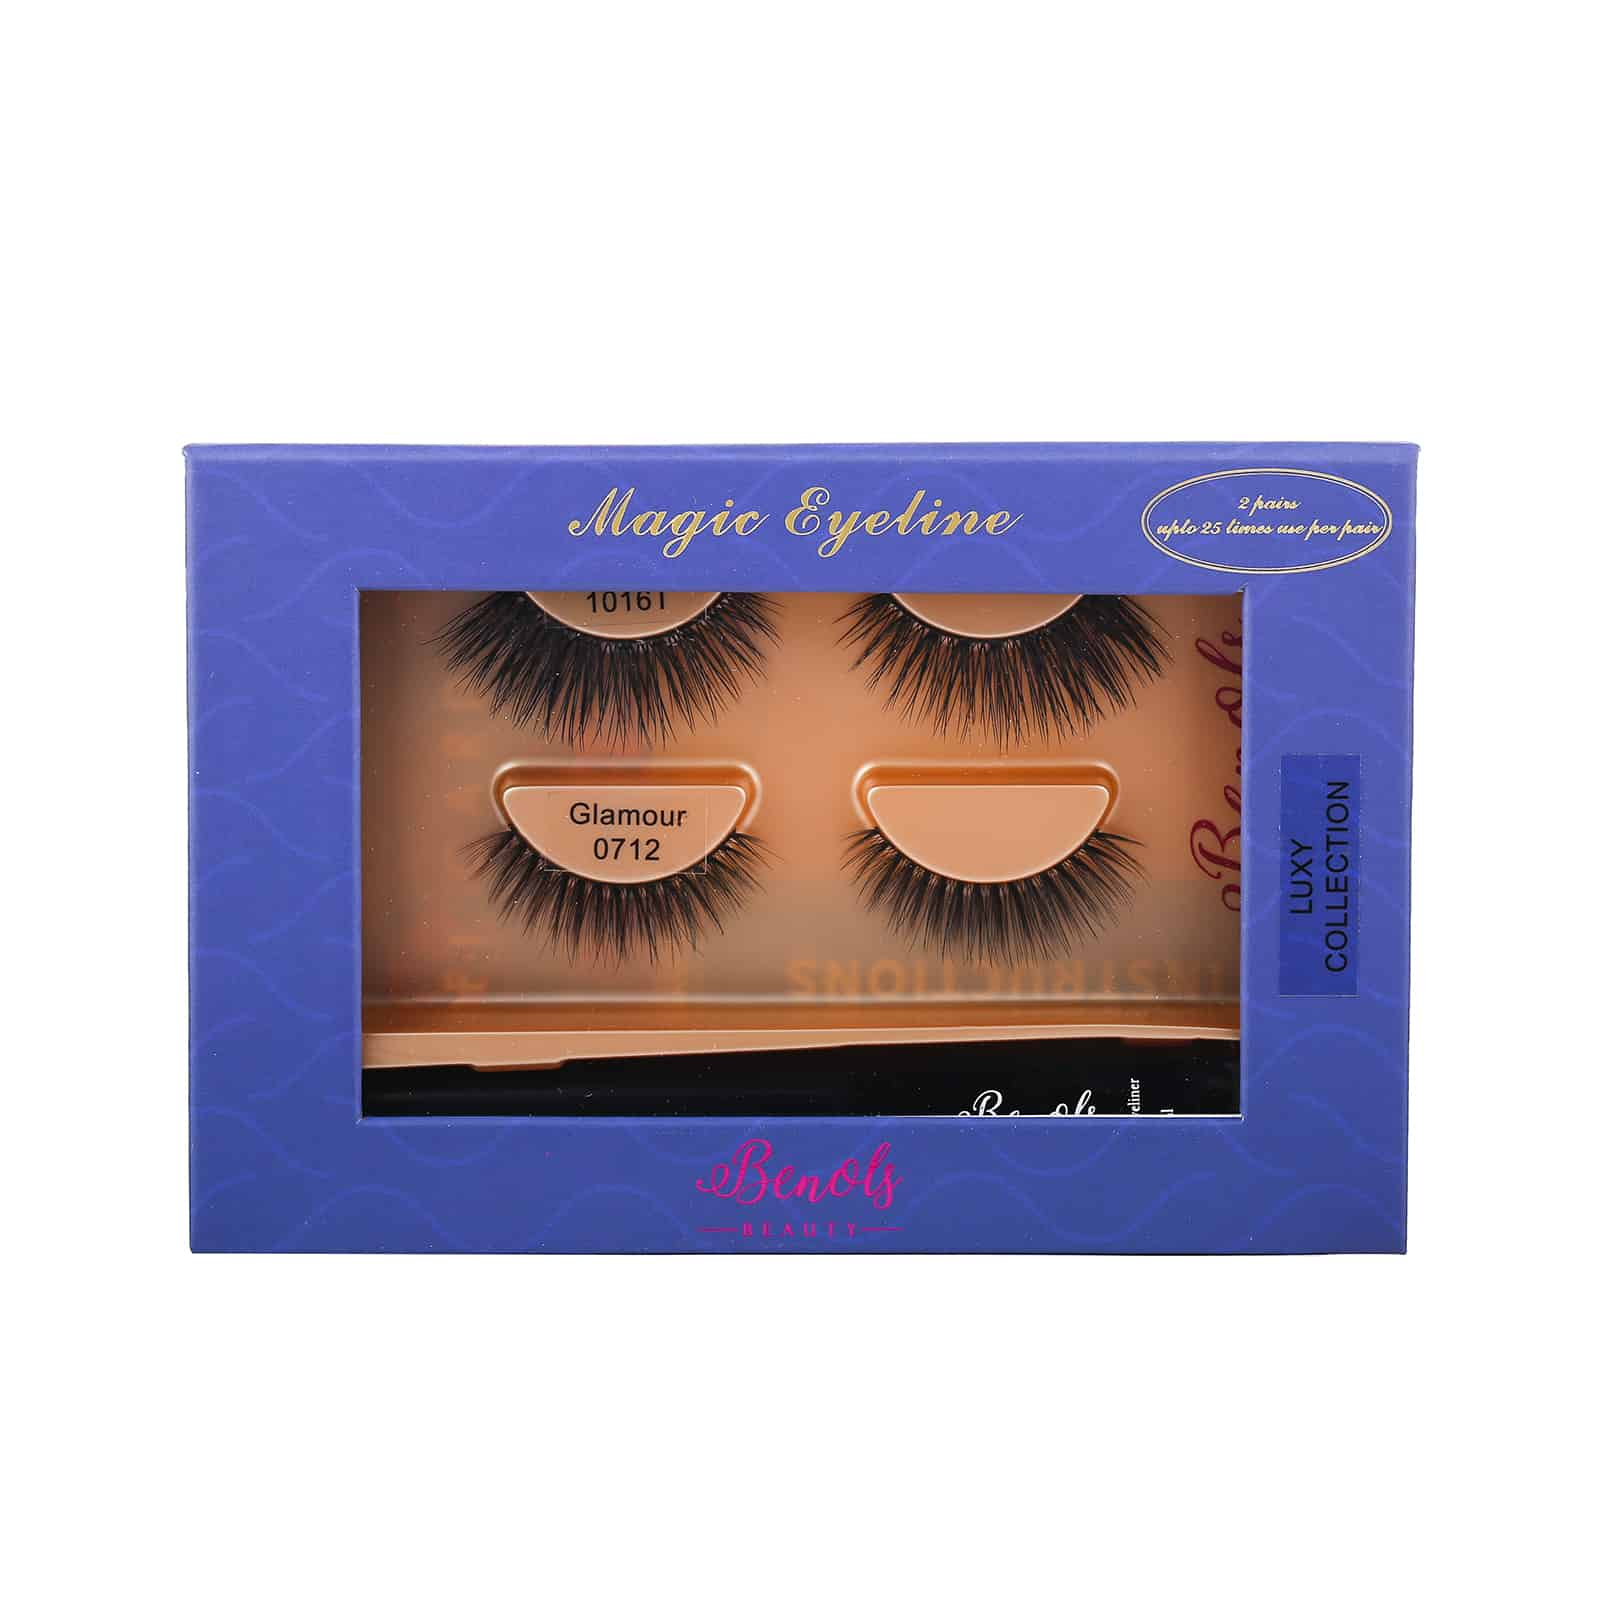 2 Pair 3D Mink Lashes with Extra Bond Magic Eyeliner (LUXY COLLECTION) - Benols Beauty